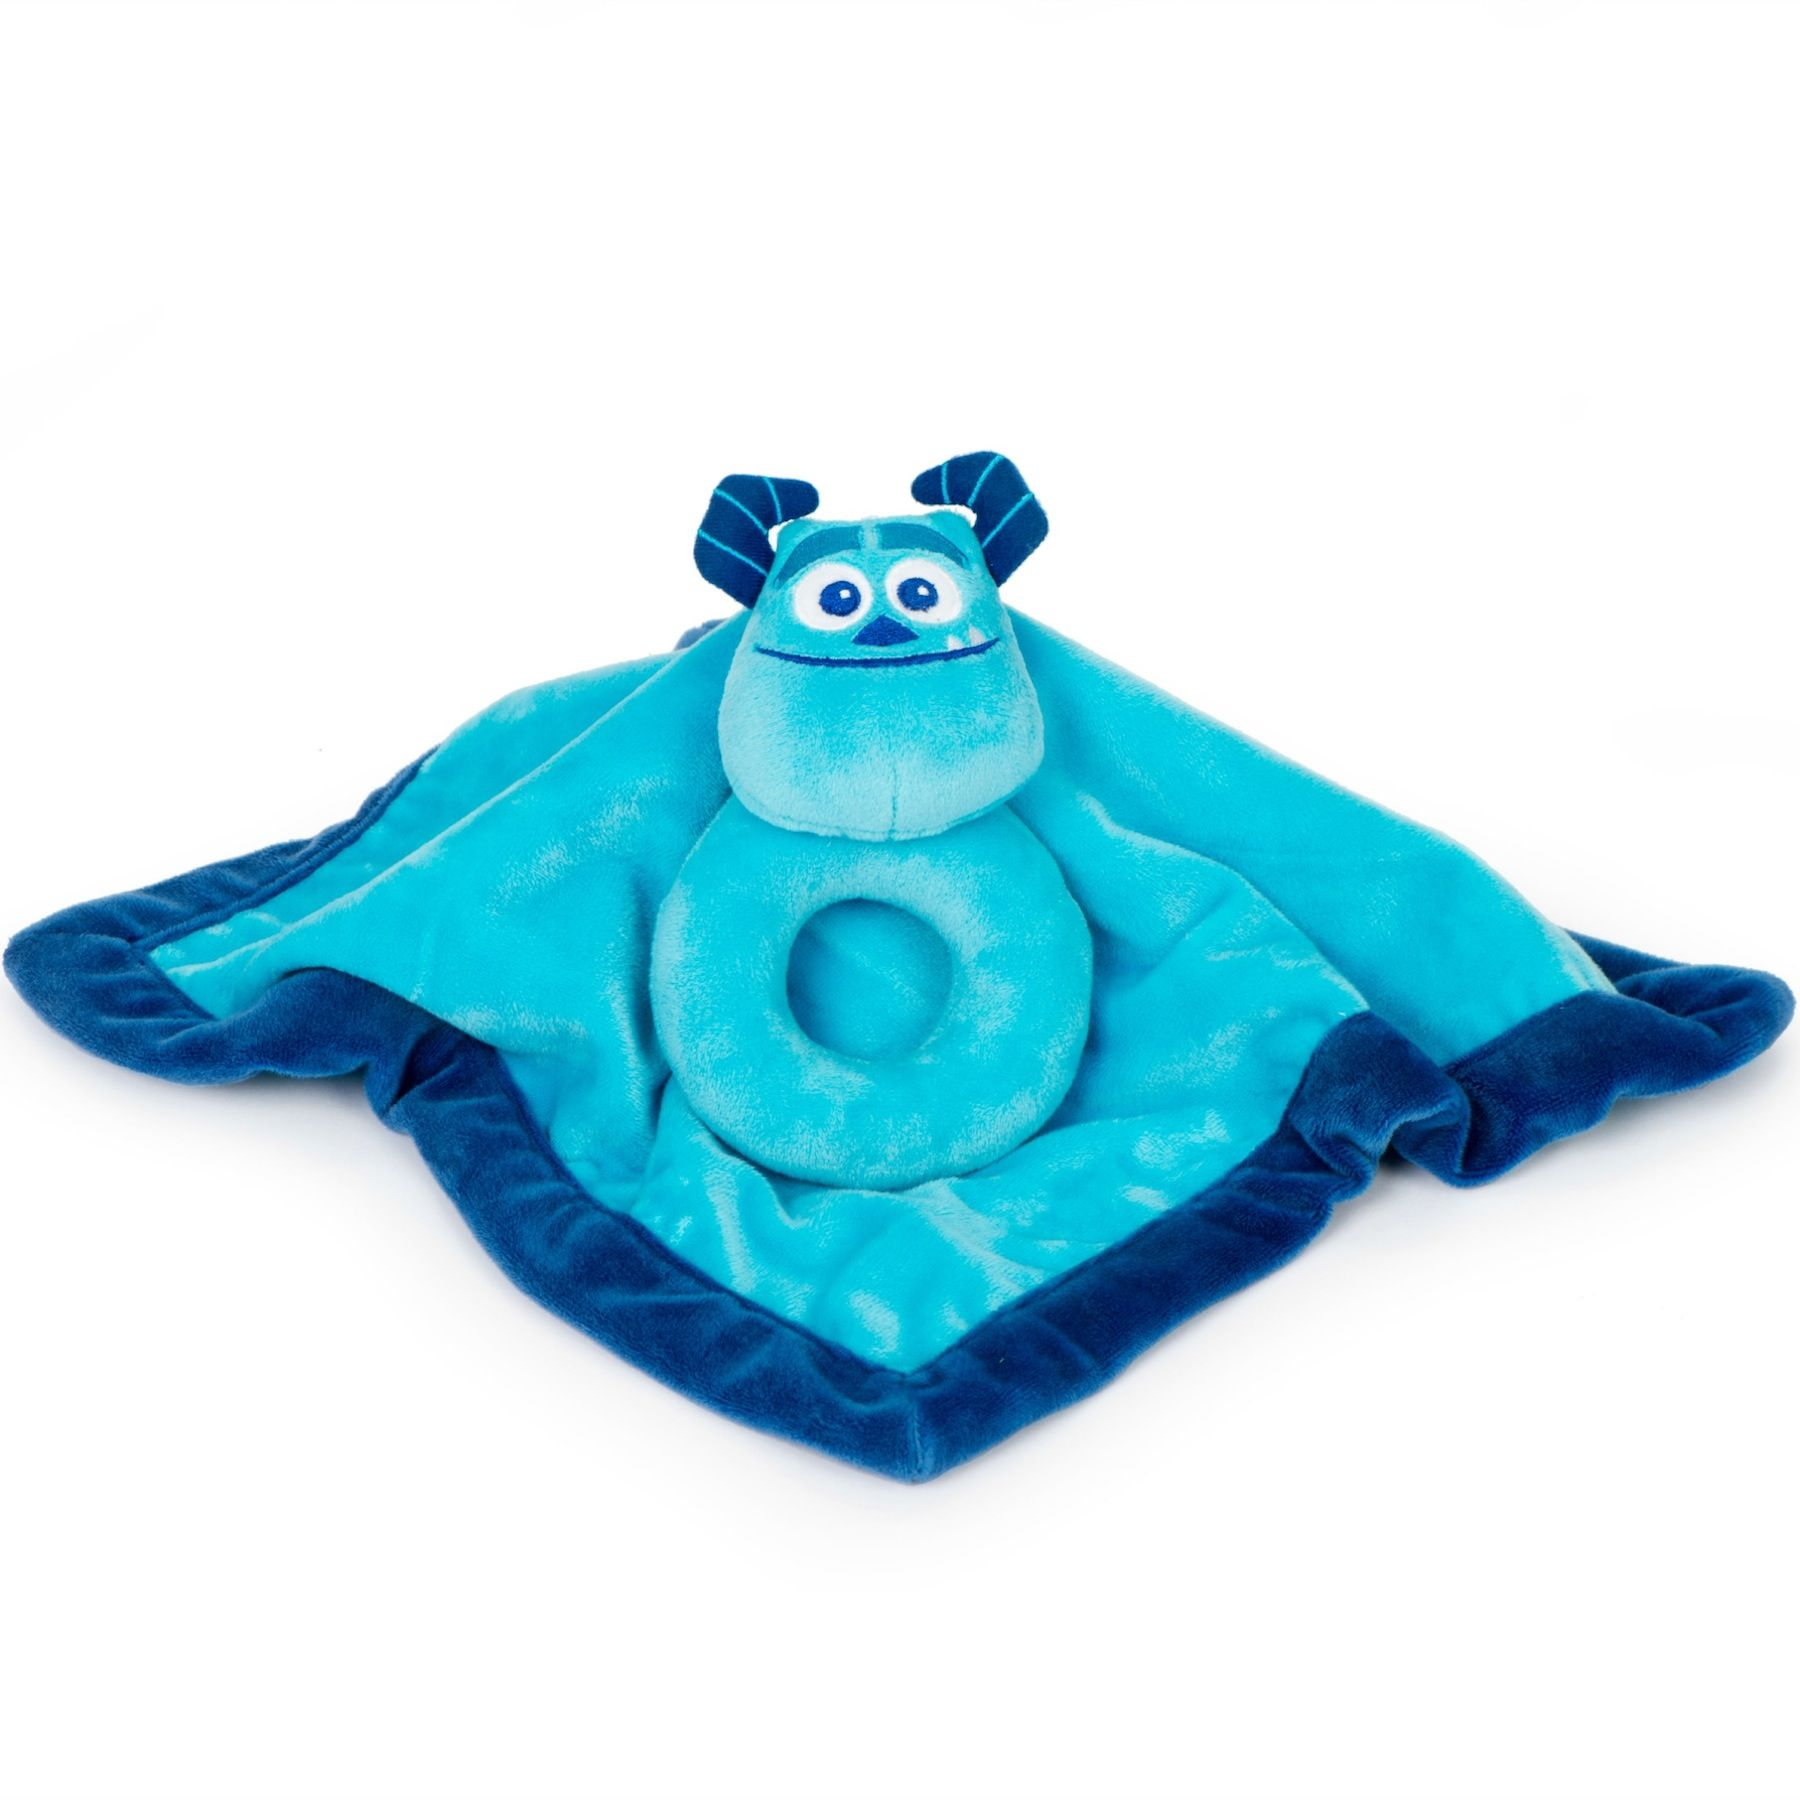 MONSTERS, INC. Sulley Security Blanket and Ring Rattle Set